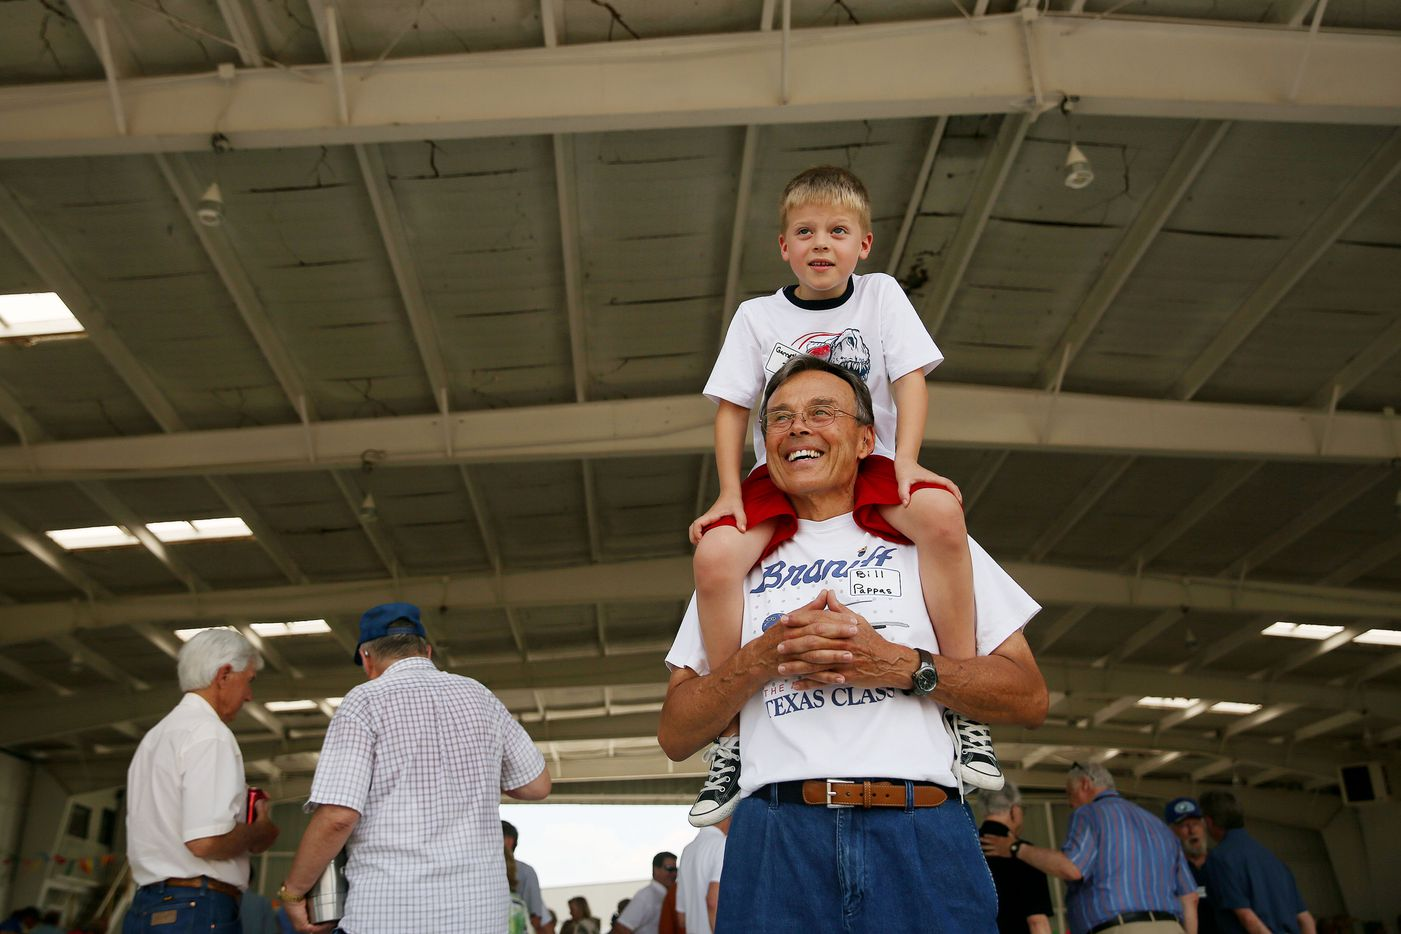 Bill Pappas, who was a pilot for Braniff for nine years, carries his grandson Garrett Pappas, 6, as they look at the runway during the 41st annual Braniff International Airways pilots picnic at Denton Municipal Airport.